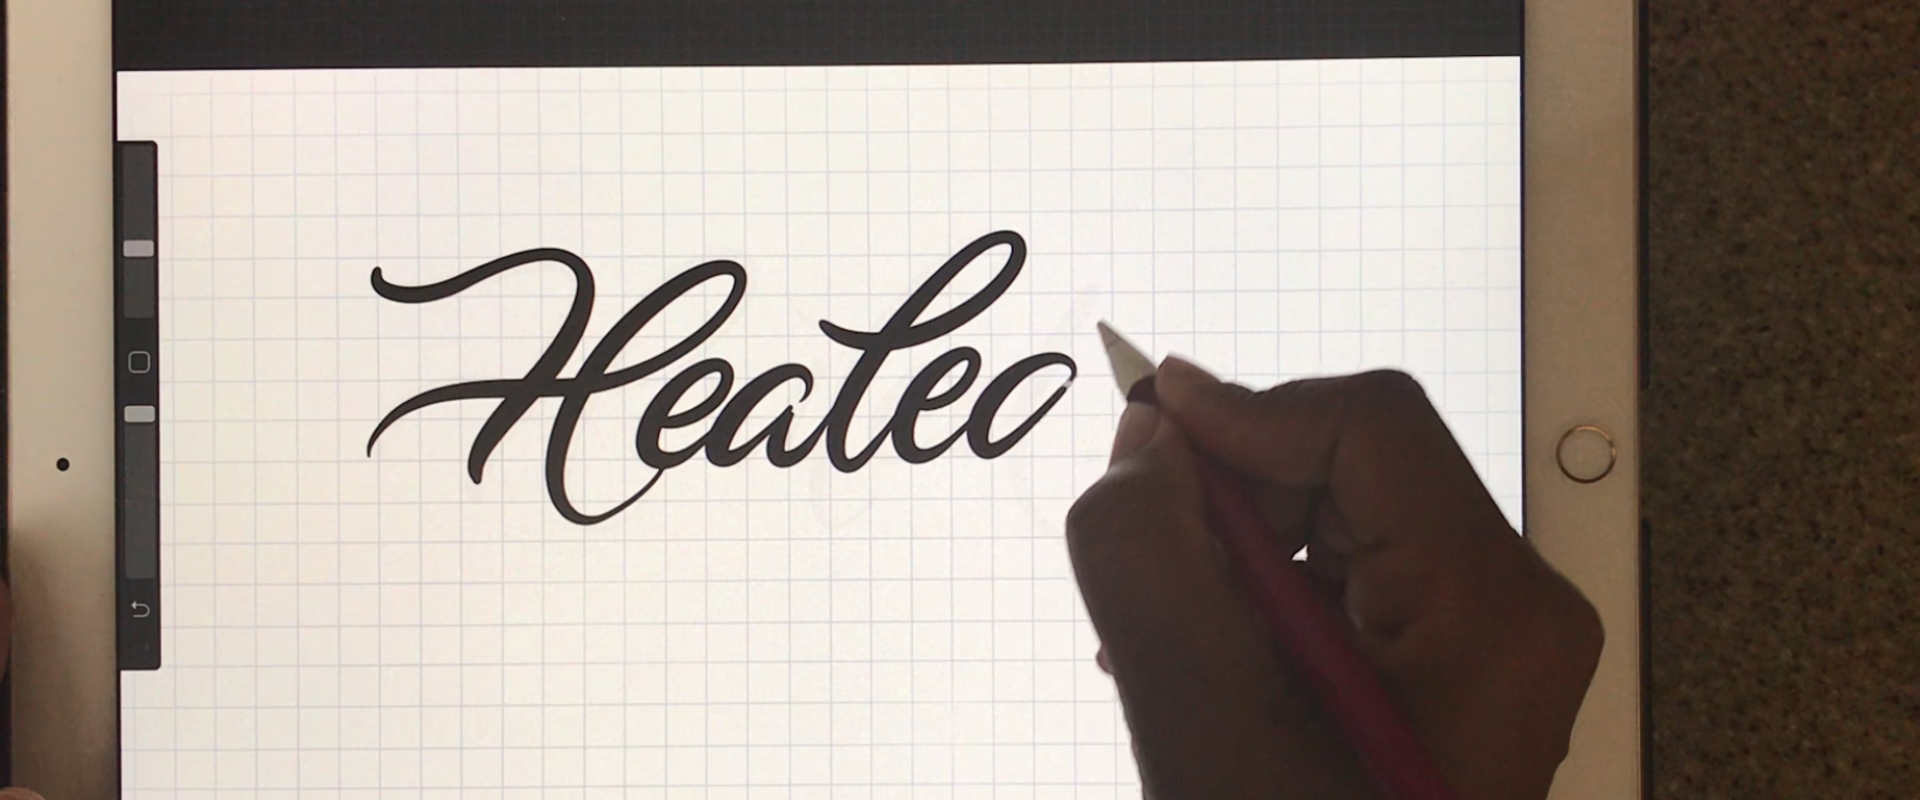 Calligraphy, Procreate and Over App